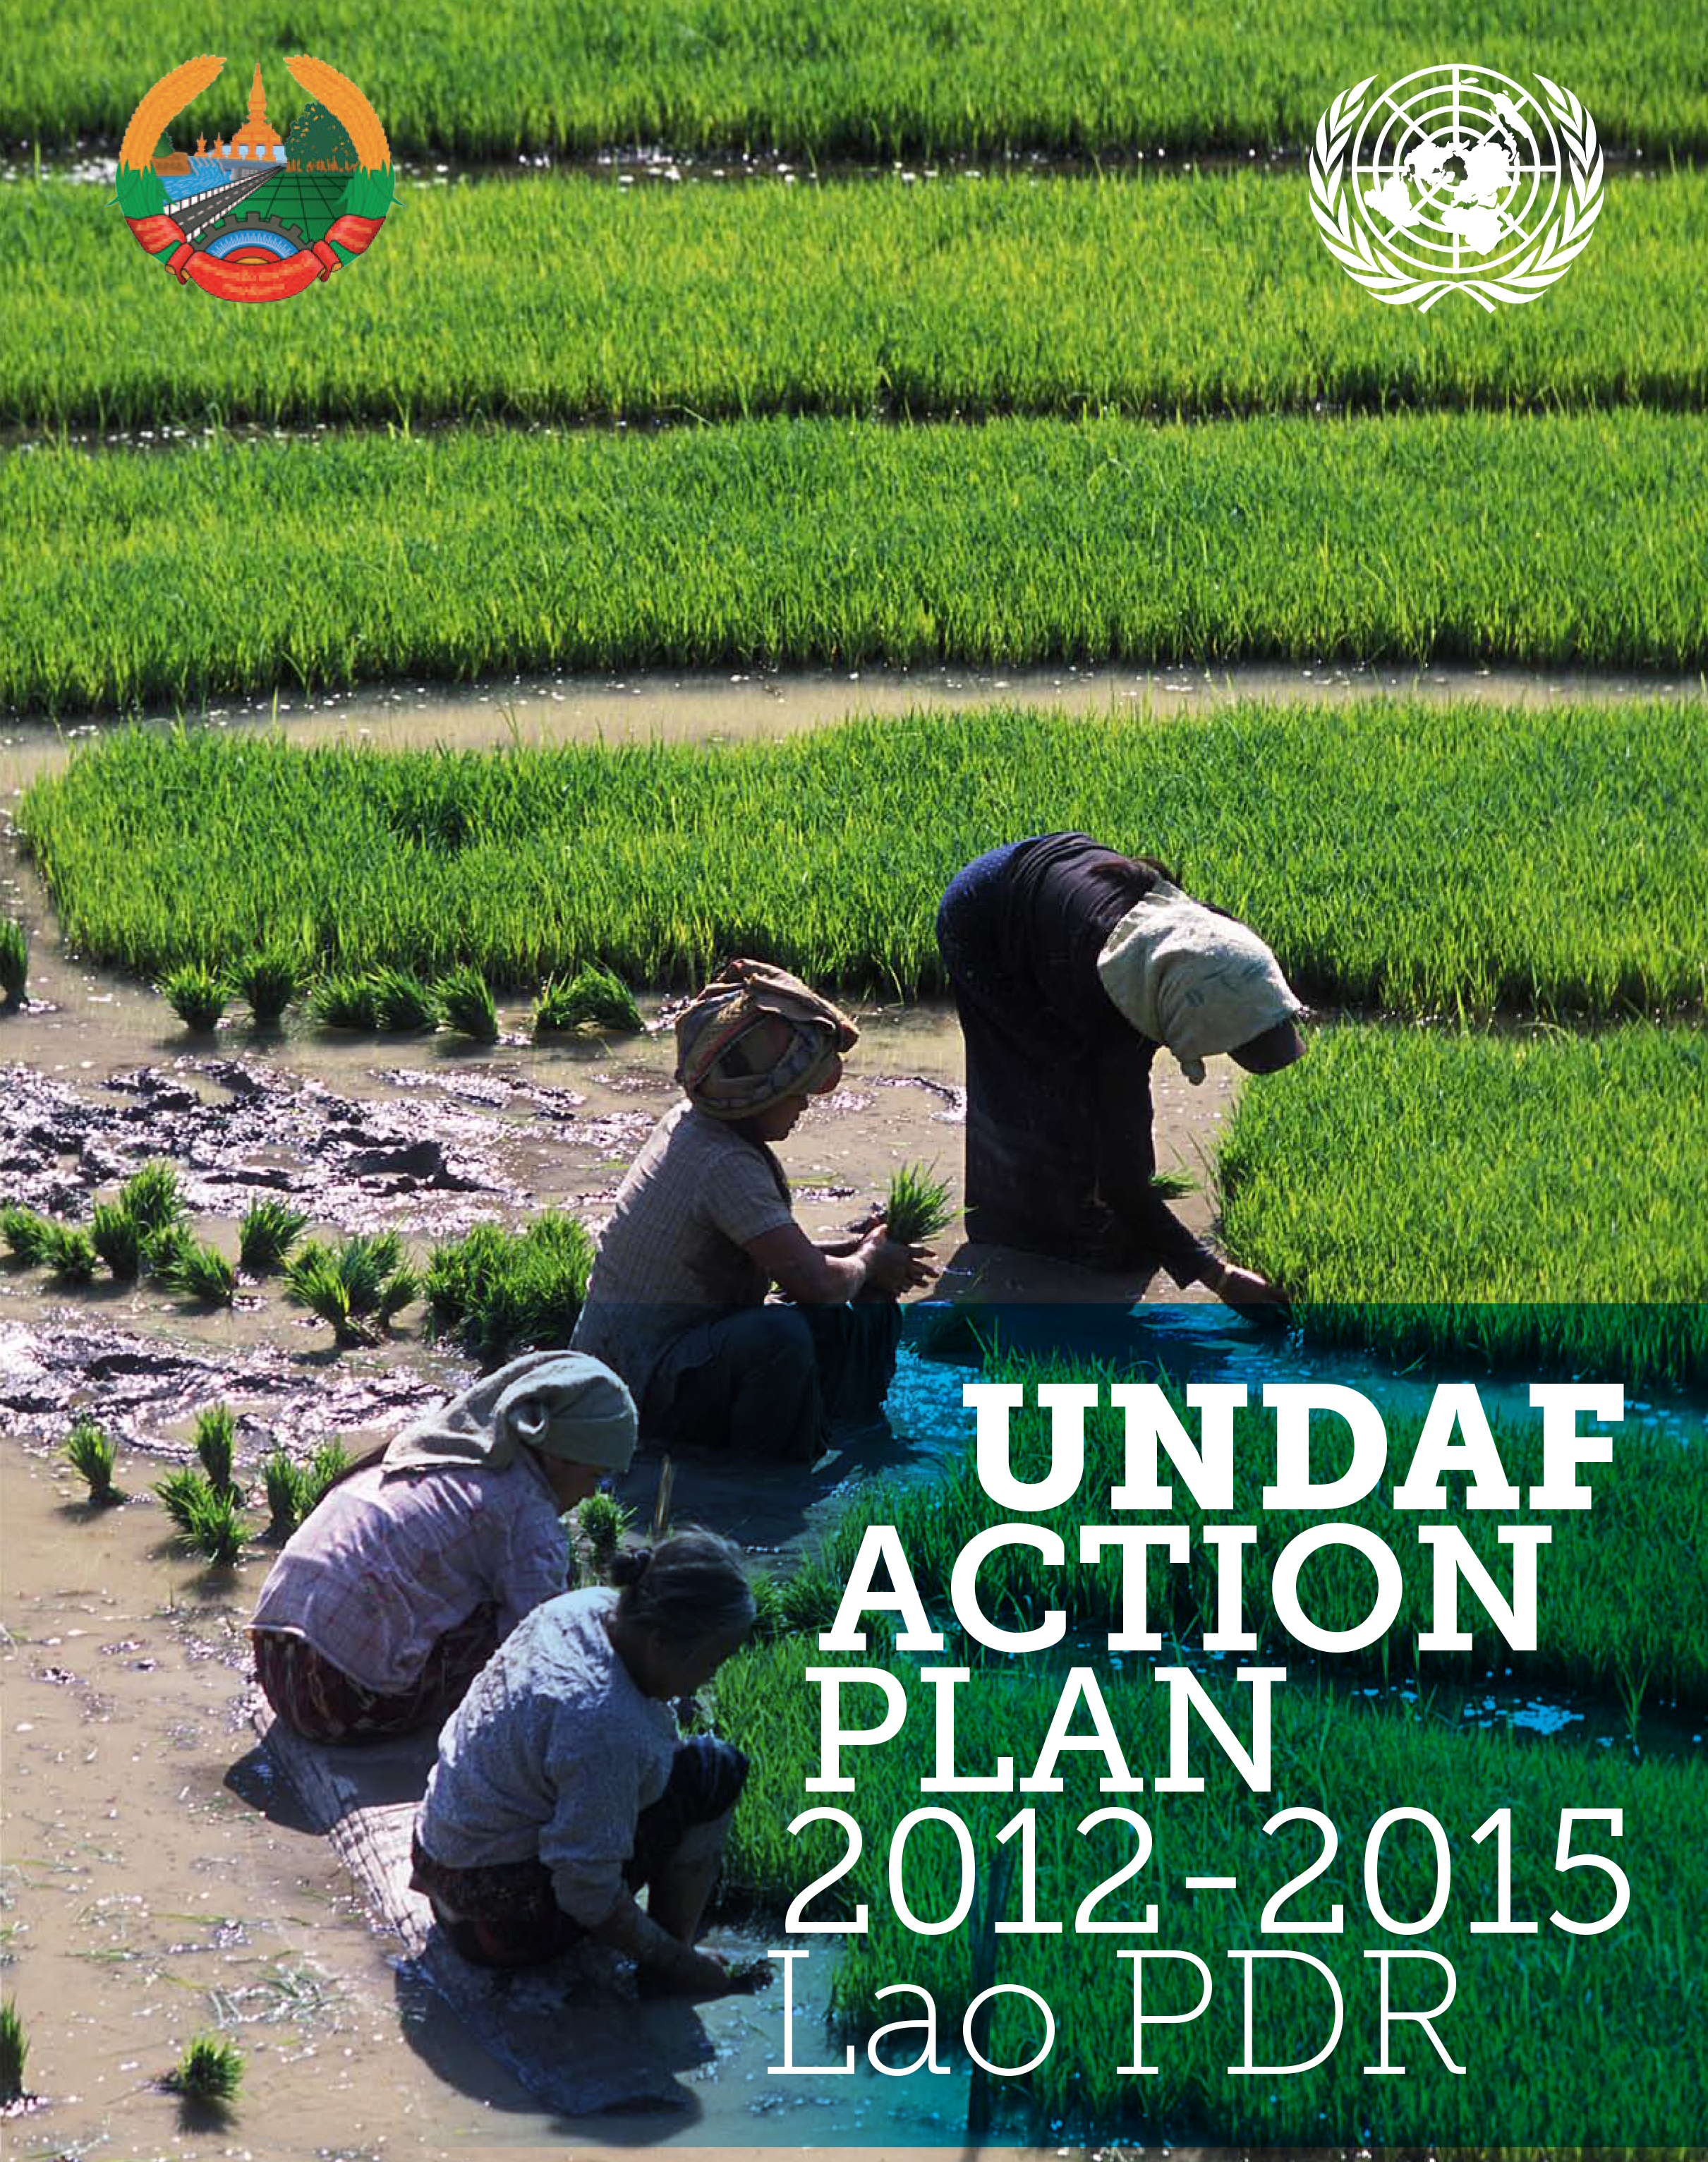 2012-2015 UNDAF Action Plan - Cover